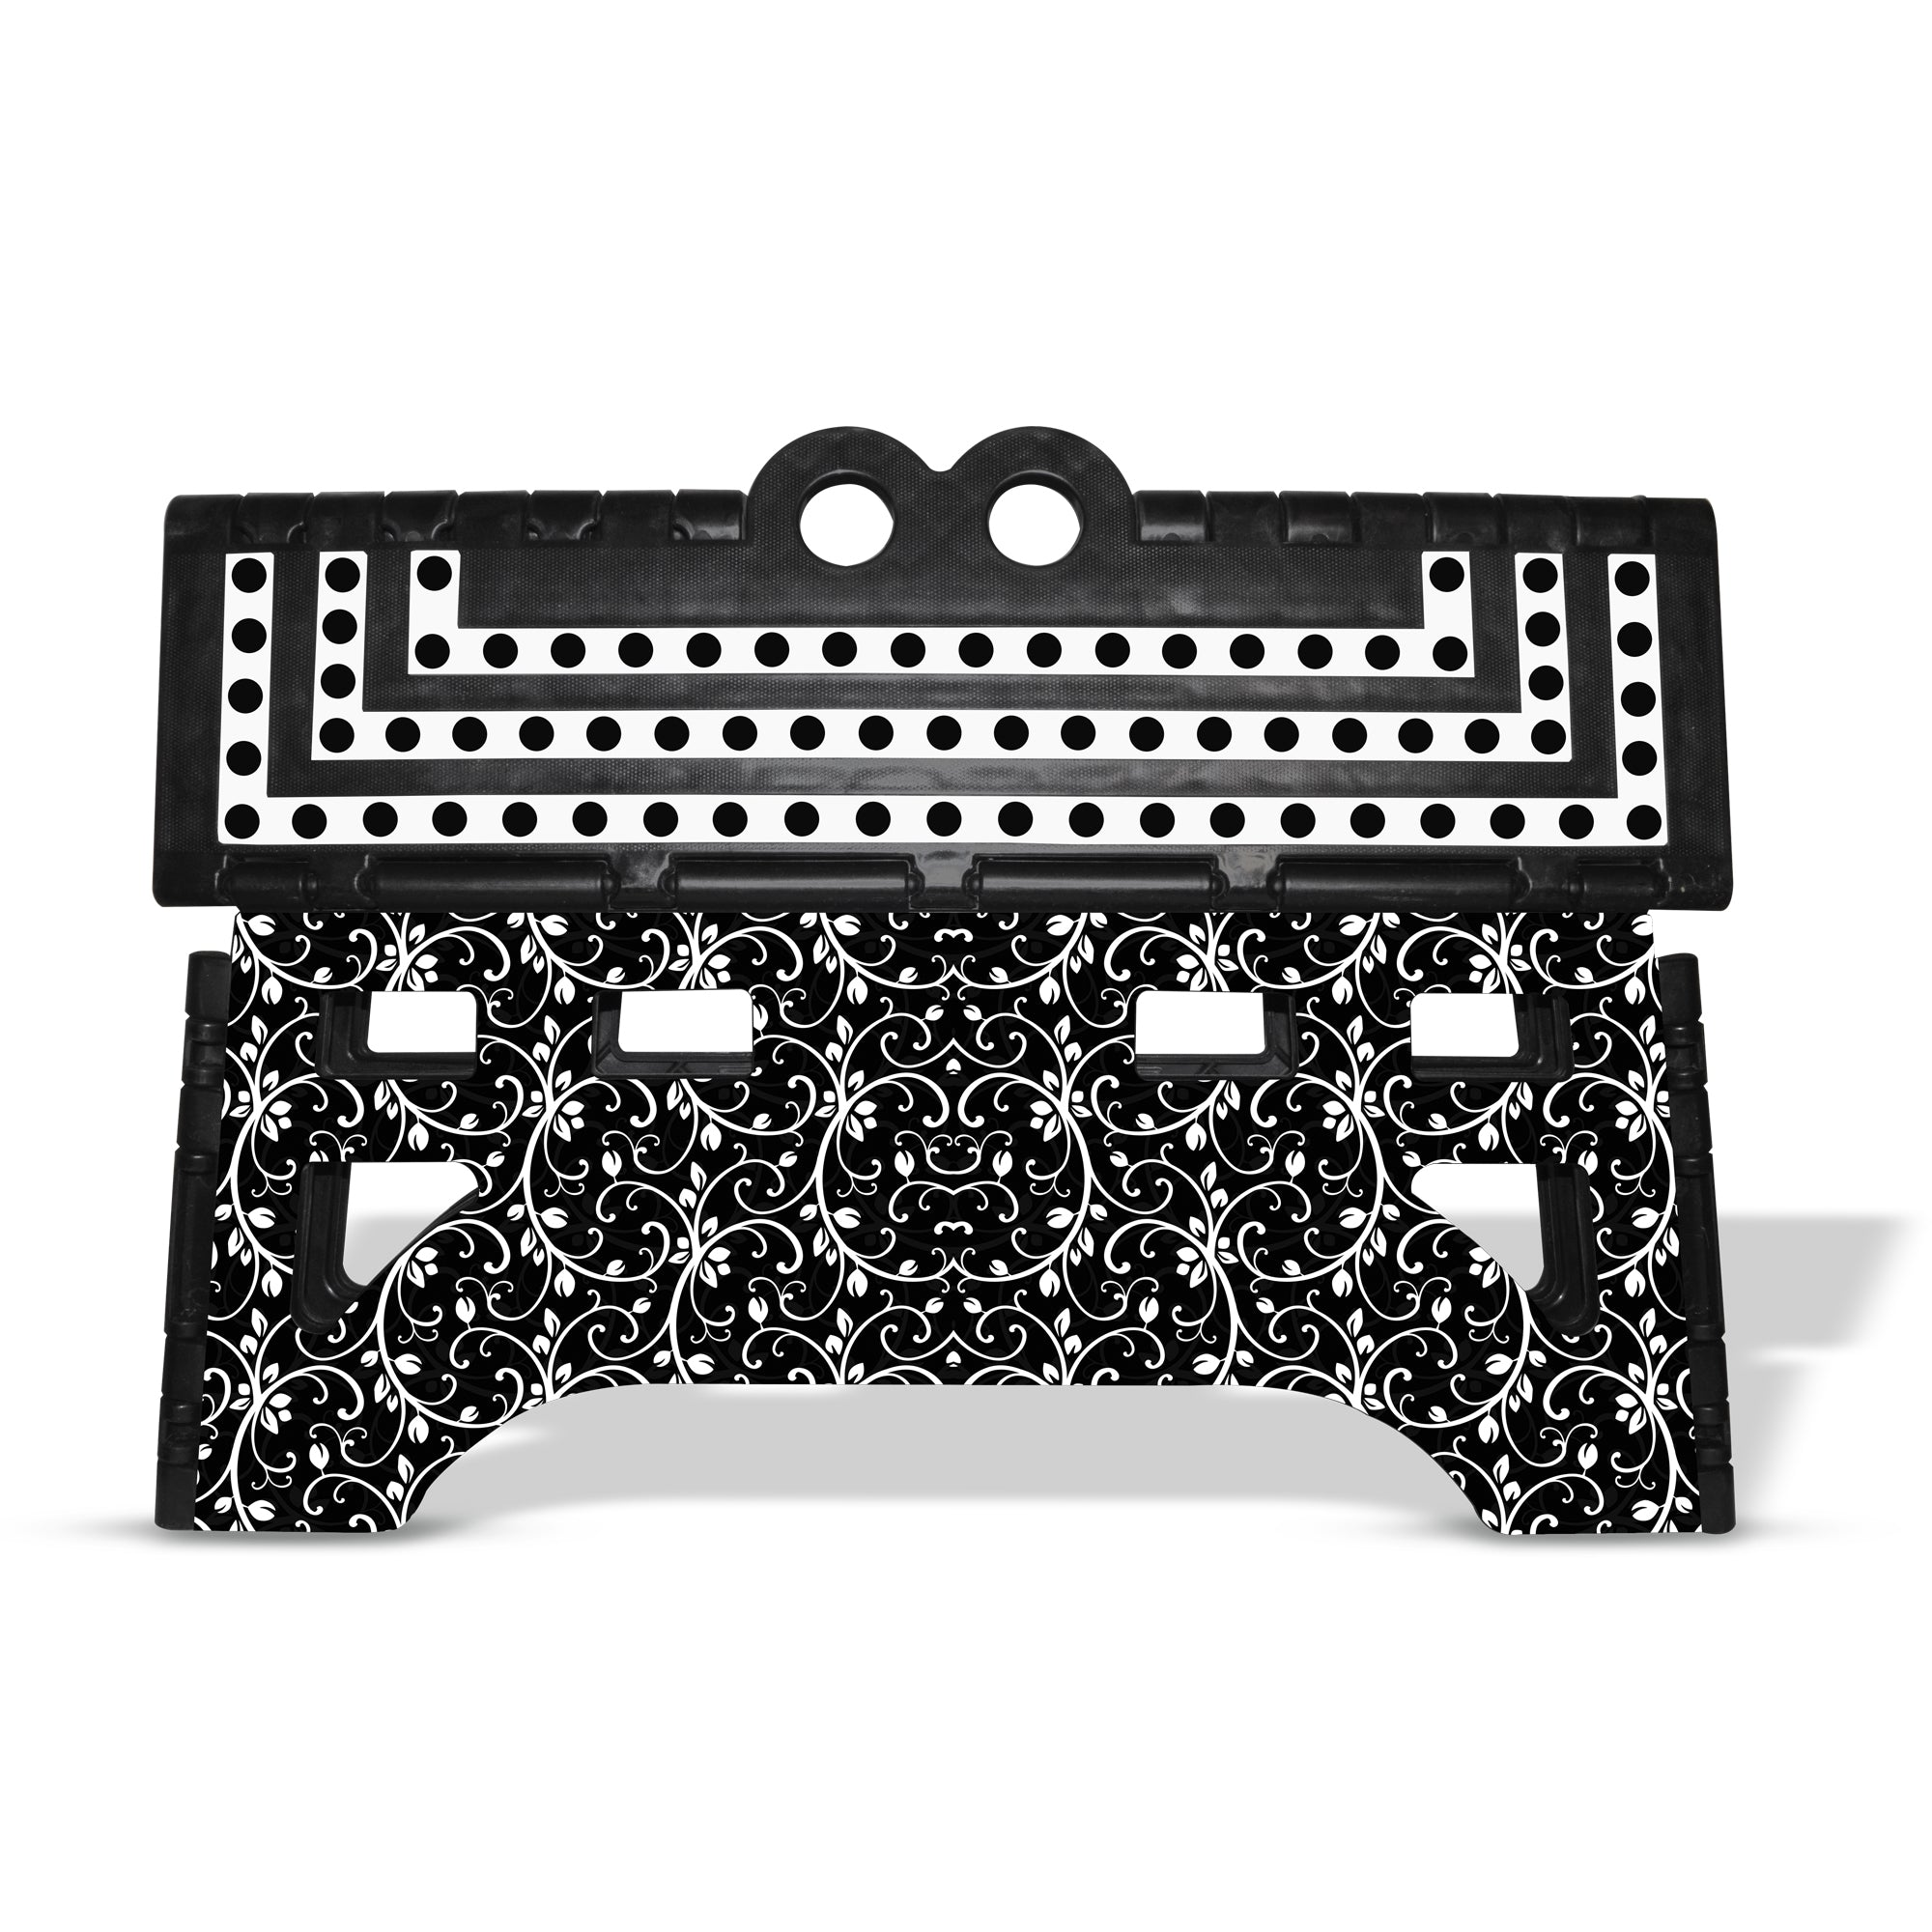 Marvelous Expace 20 Inch Extra Wide Folding Step Stool Black Floral Gmtry Best Dining Table And Chair Ideas Images Gmtryco